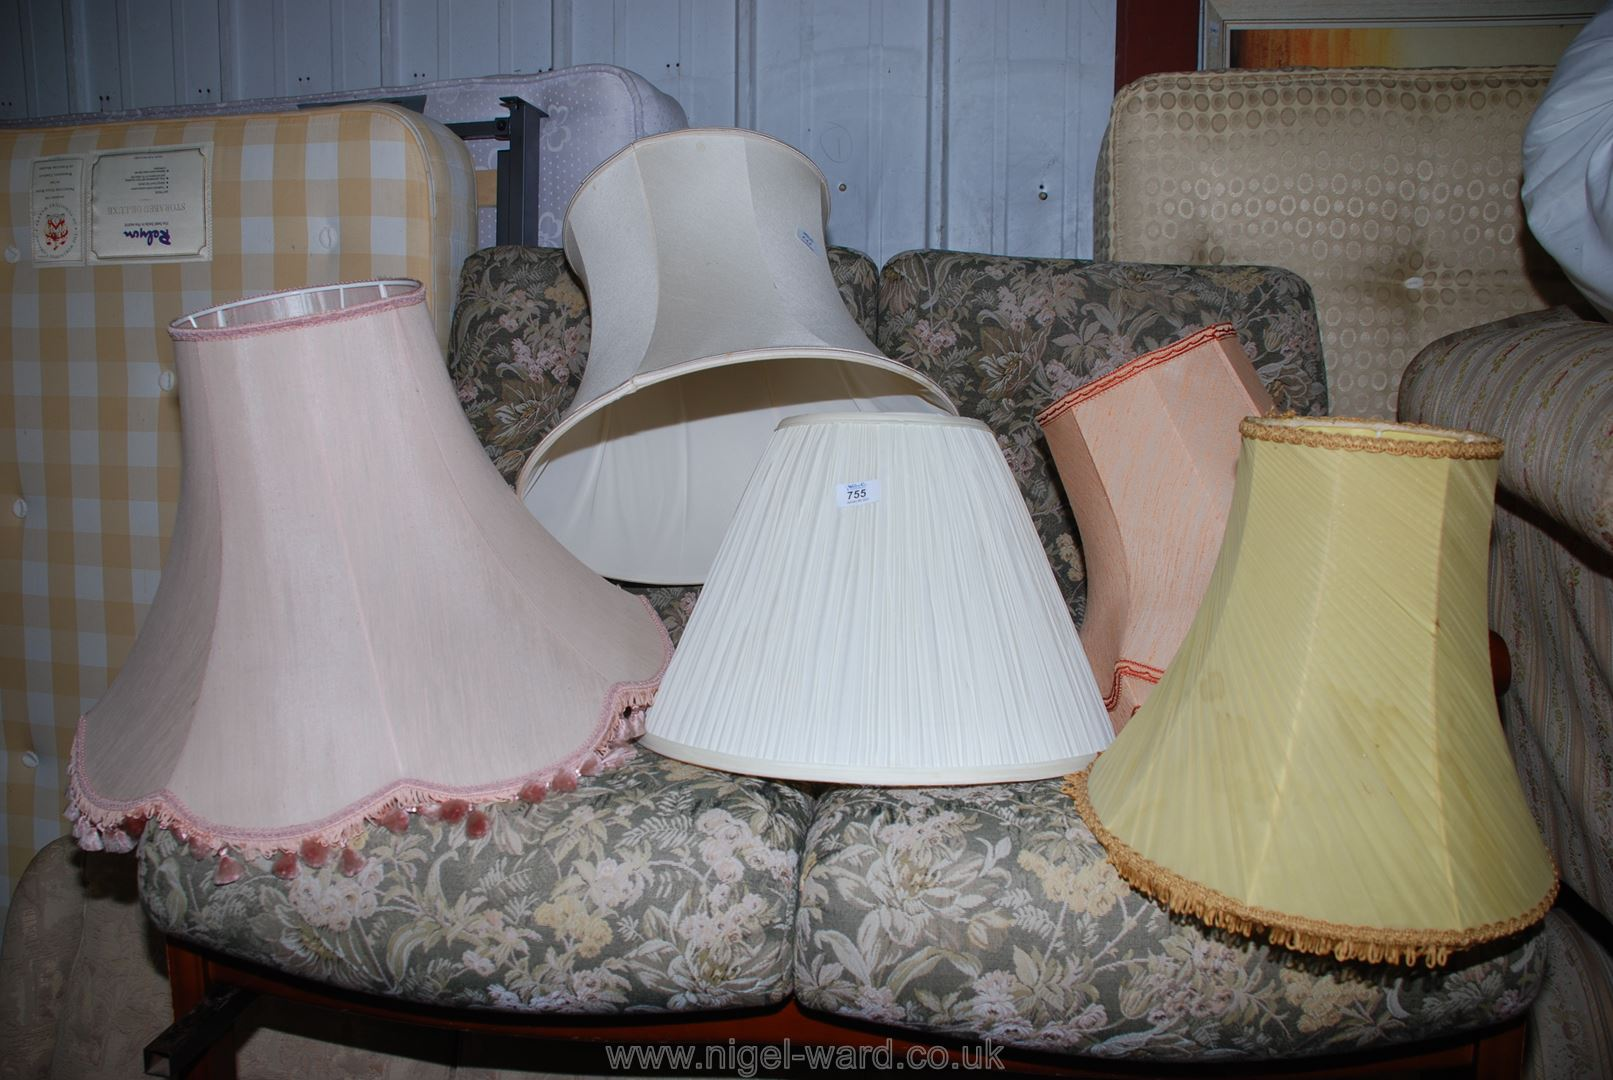 A collection of various linen lamp-shades.